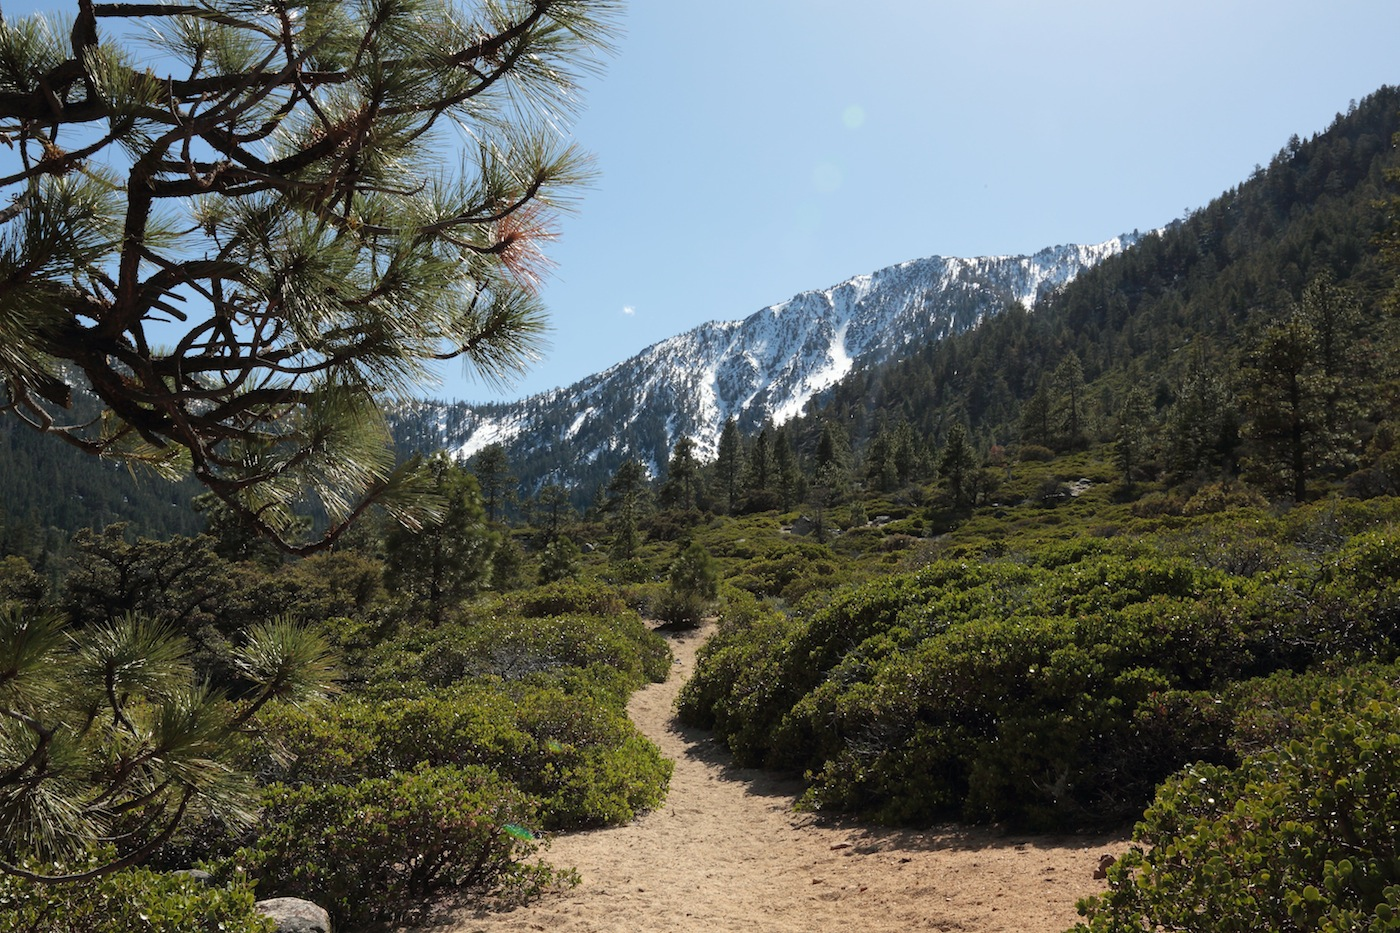 Manzanita and Mountain on Fay Luther Trail